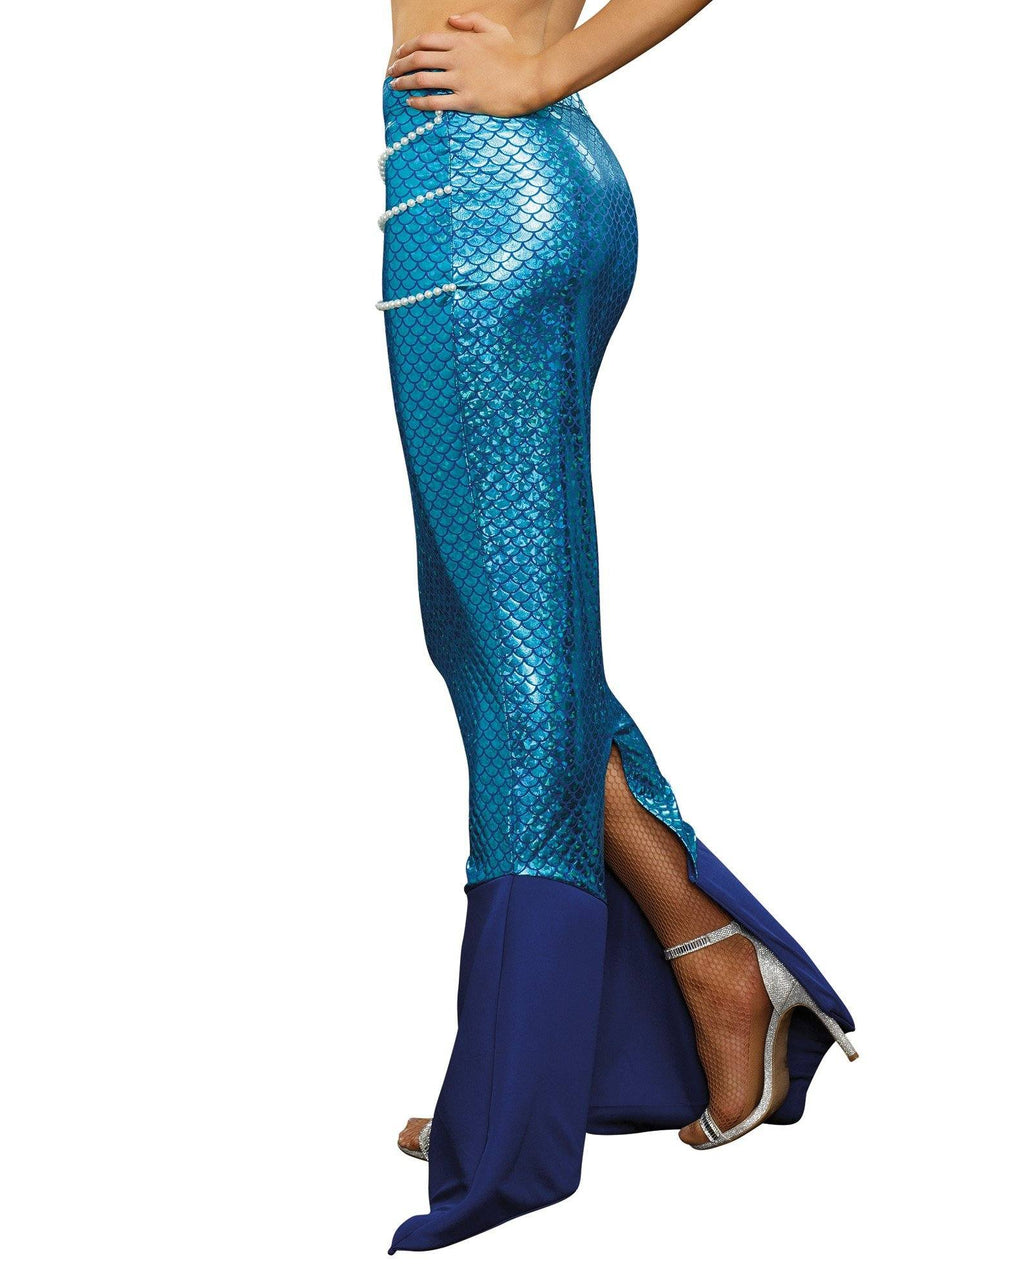 Mermaid Skirt Costume Accessory Dreamgirl Costume